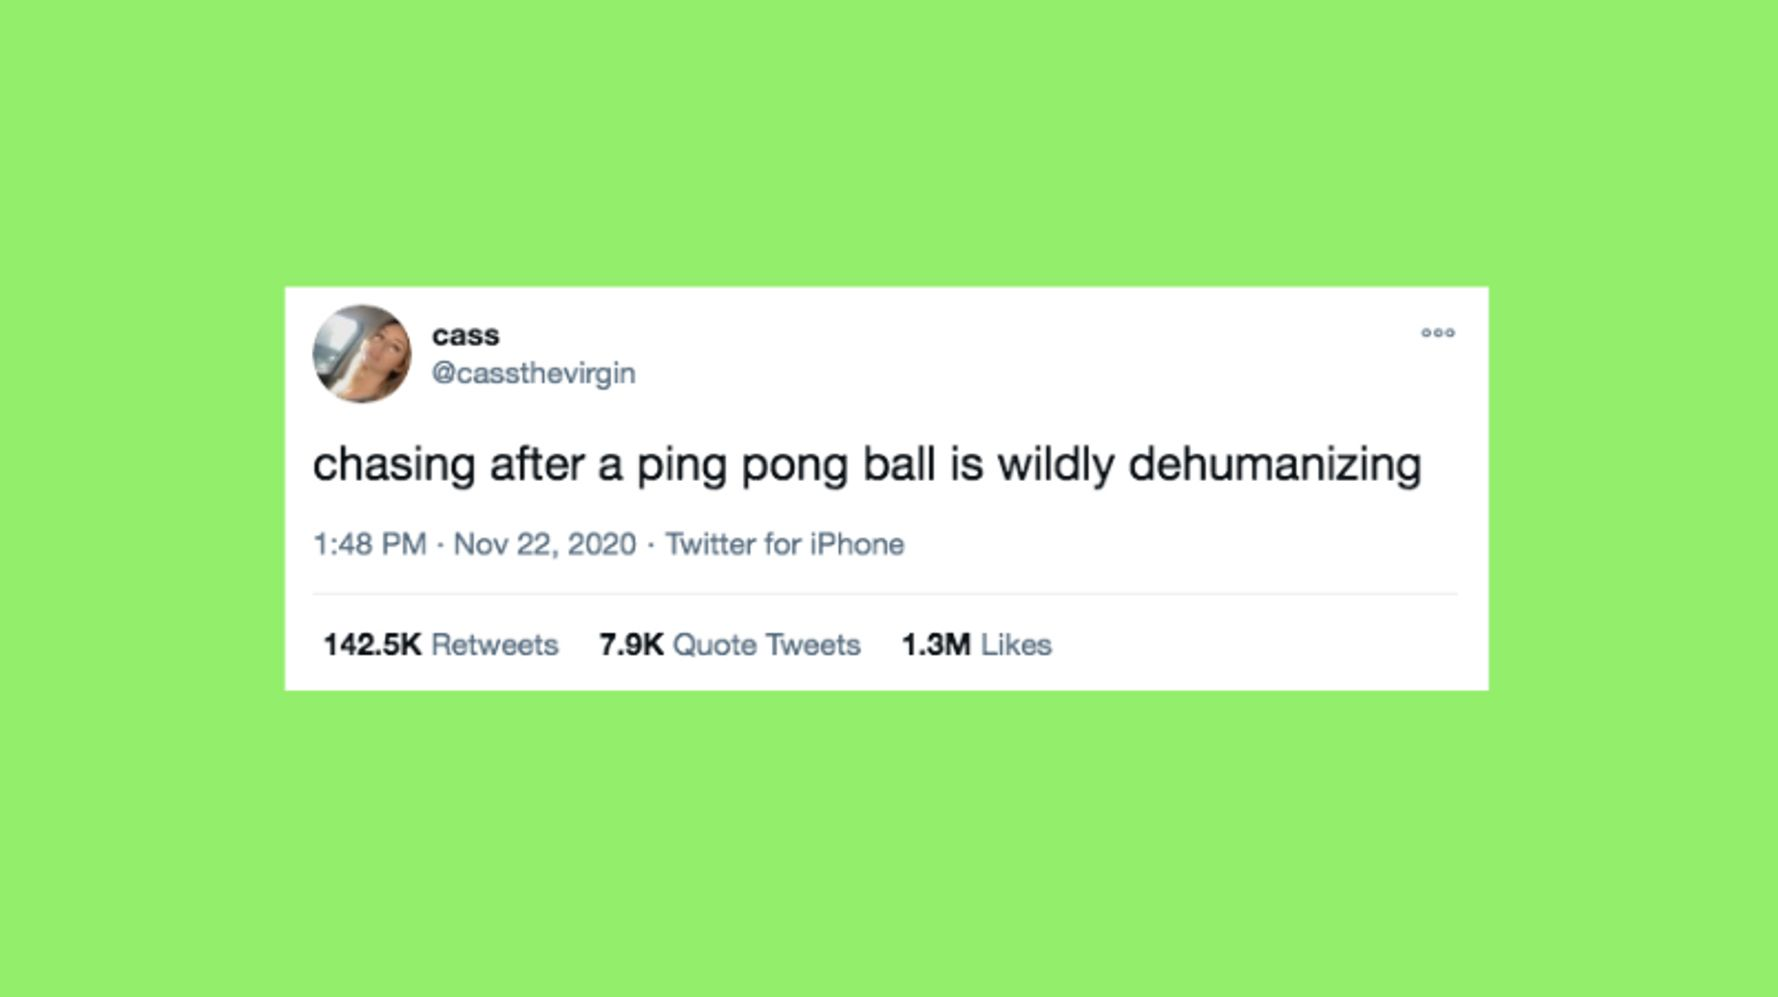 The 20 Funniest Tweets From Women This Week (Nov. 21-27)